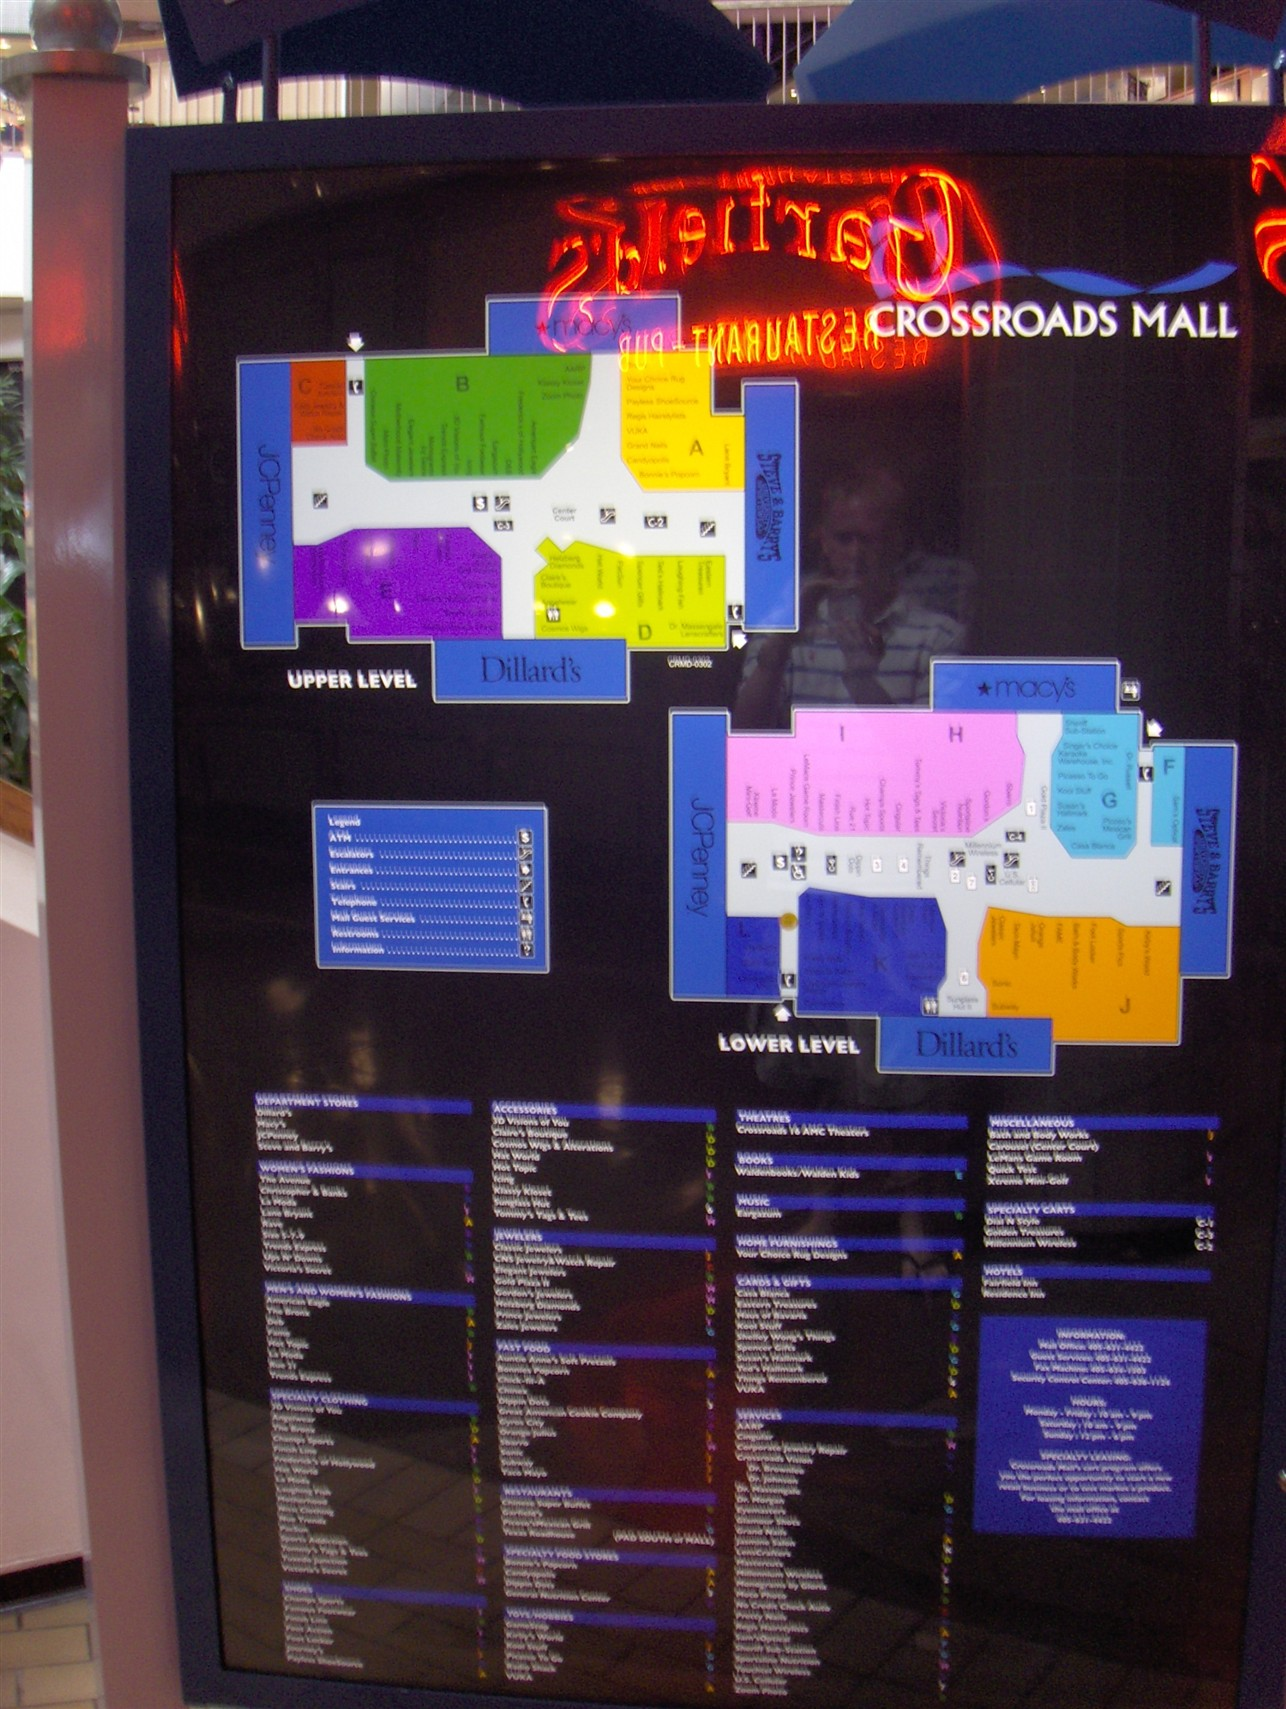 Crossroads Mall directory in Oklahoma City, OK